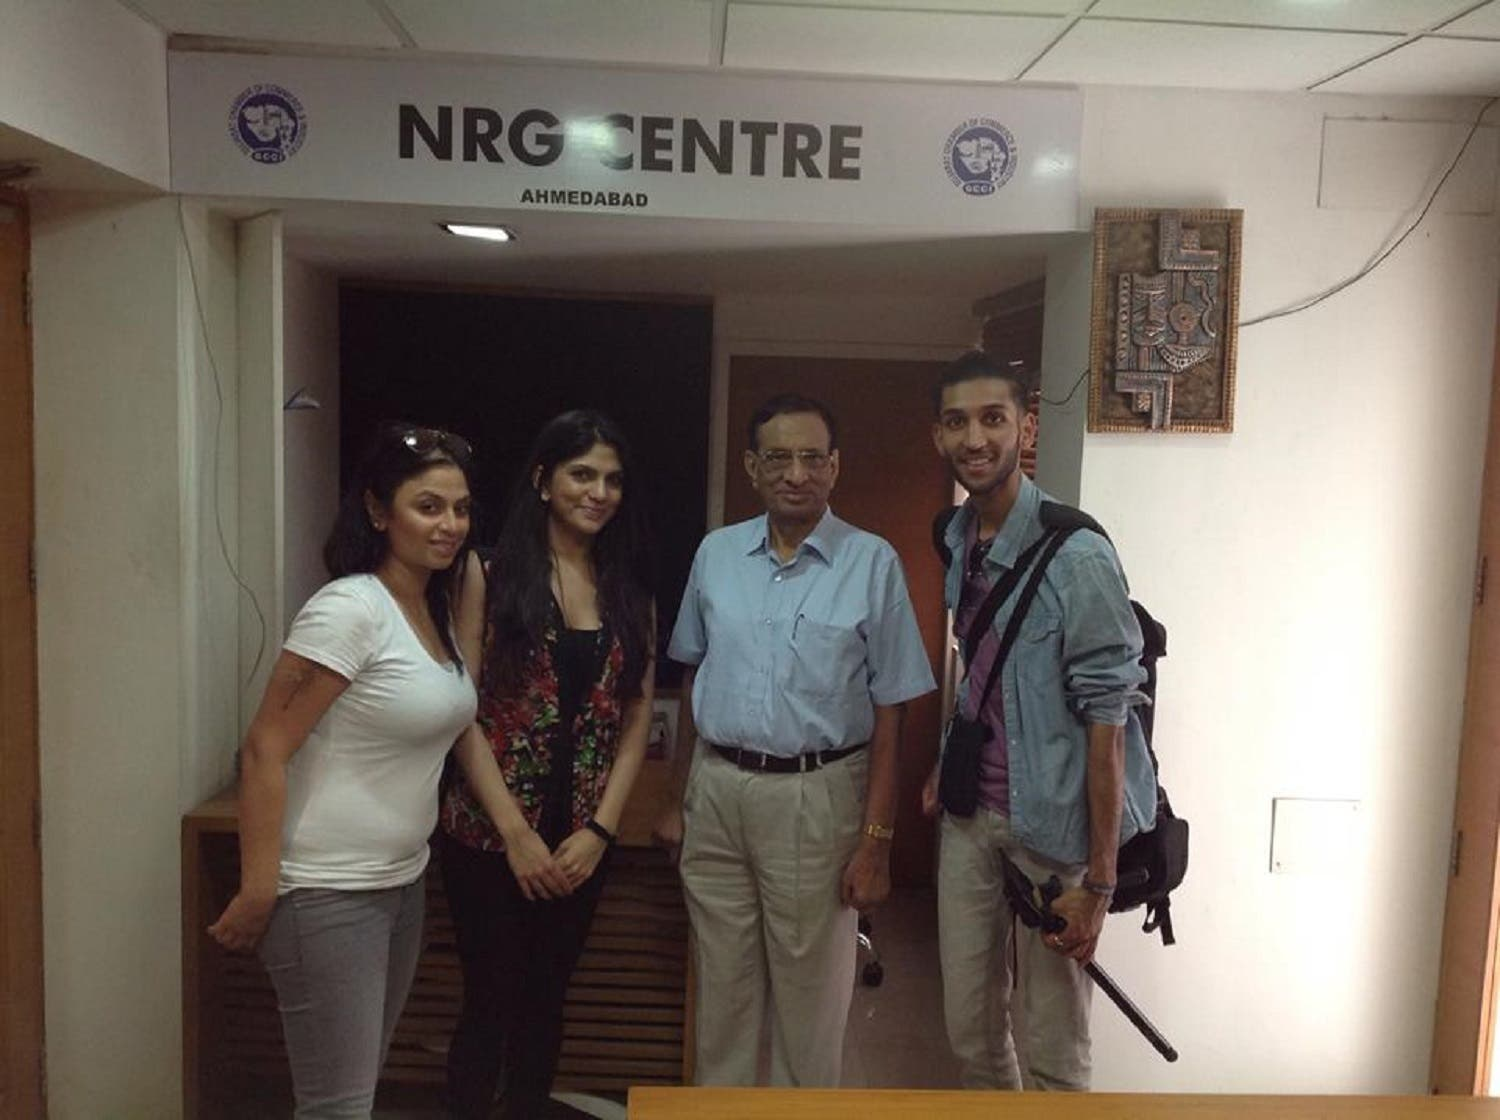 Non-resident Indians visiting Ahmedabad throng Kulin Patel's (second from right) office for help and guidance on various issues. (Supplied)